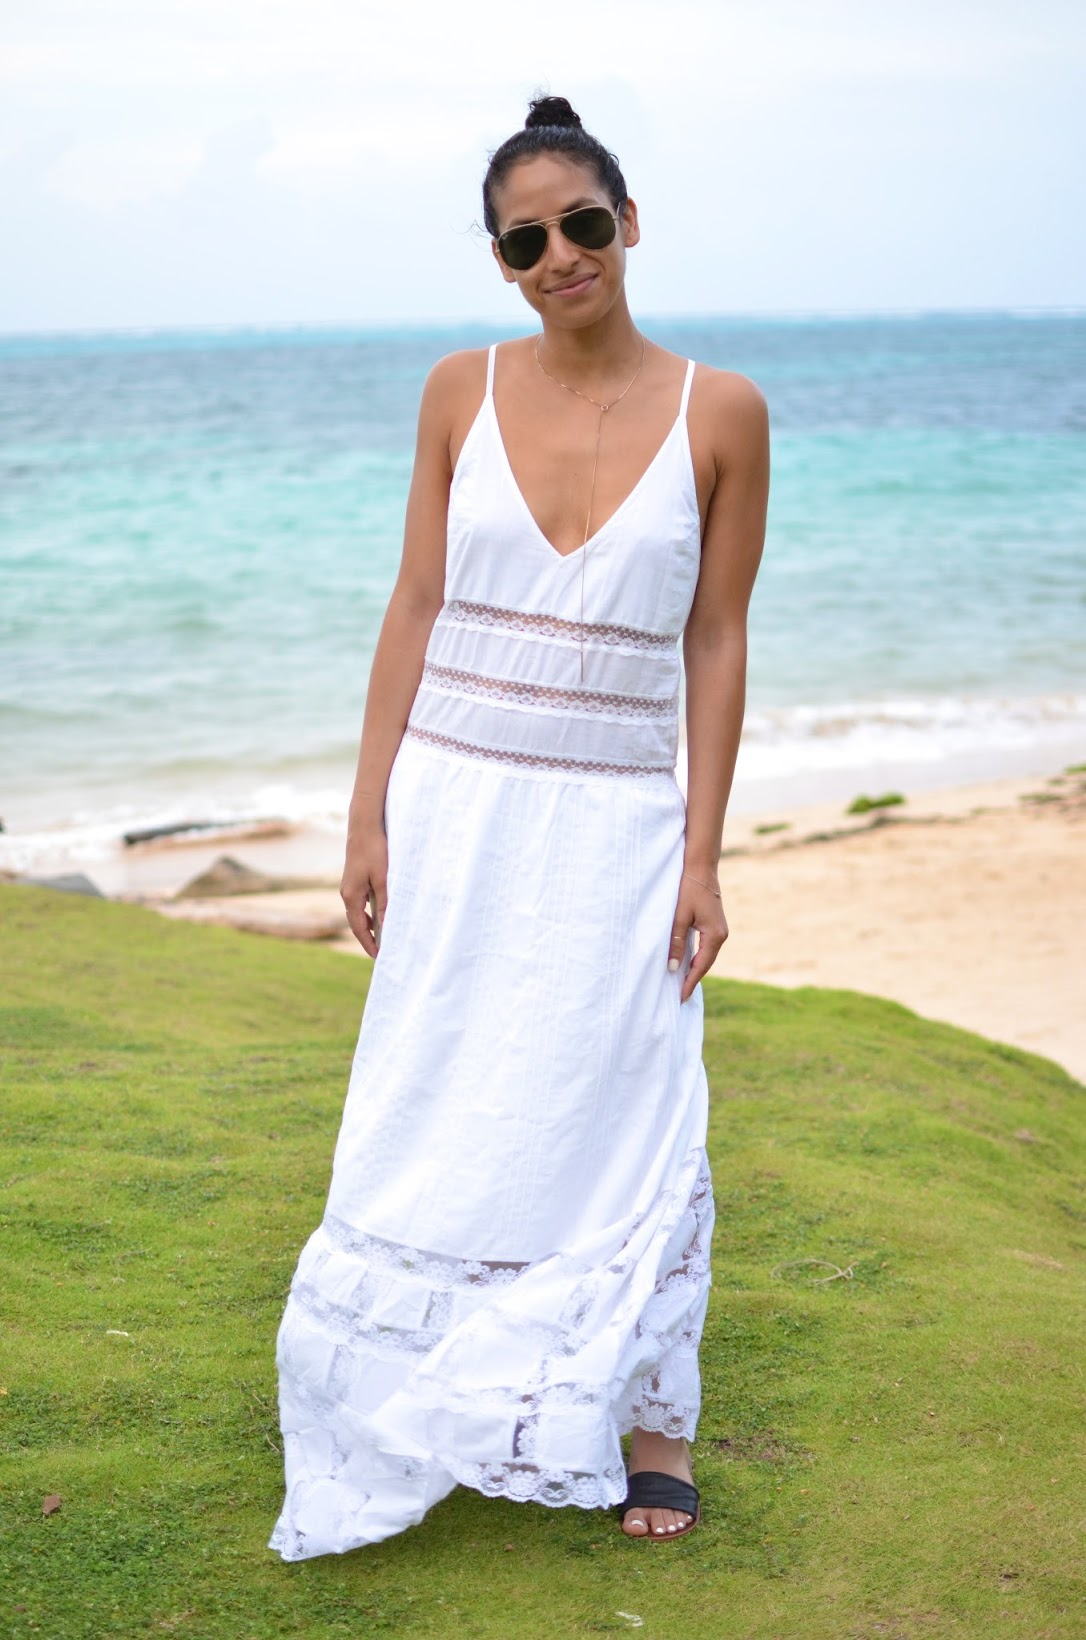 Yemaya Island Hideaway and Spa, Little Corn Island, Nicaragua, Candela NYC, White maxi dress, Lace maxi dress, Candela NYC Elsa dress, vacation style, what to wear in Nicaragua, what to wear on vacation